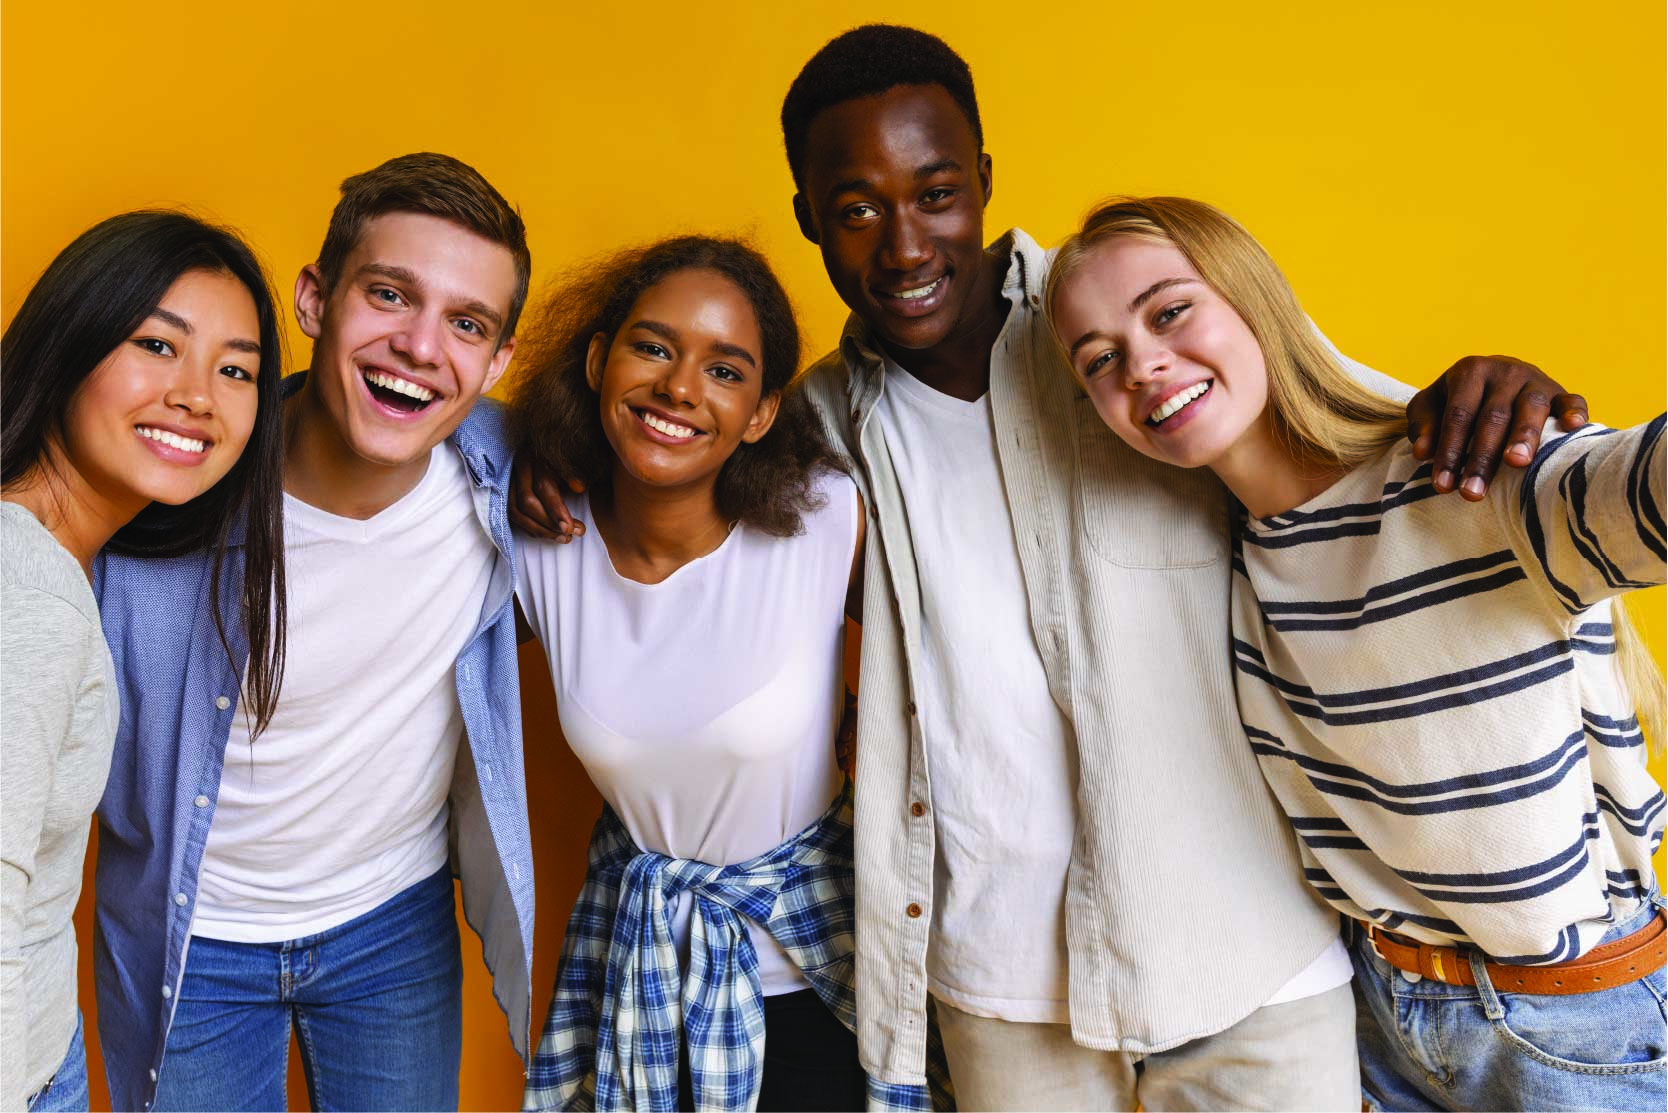 Diverse teens pose and smile against a yellow background